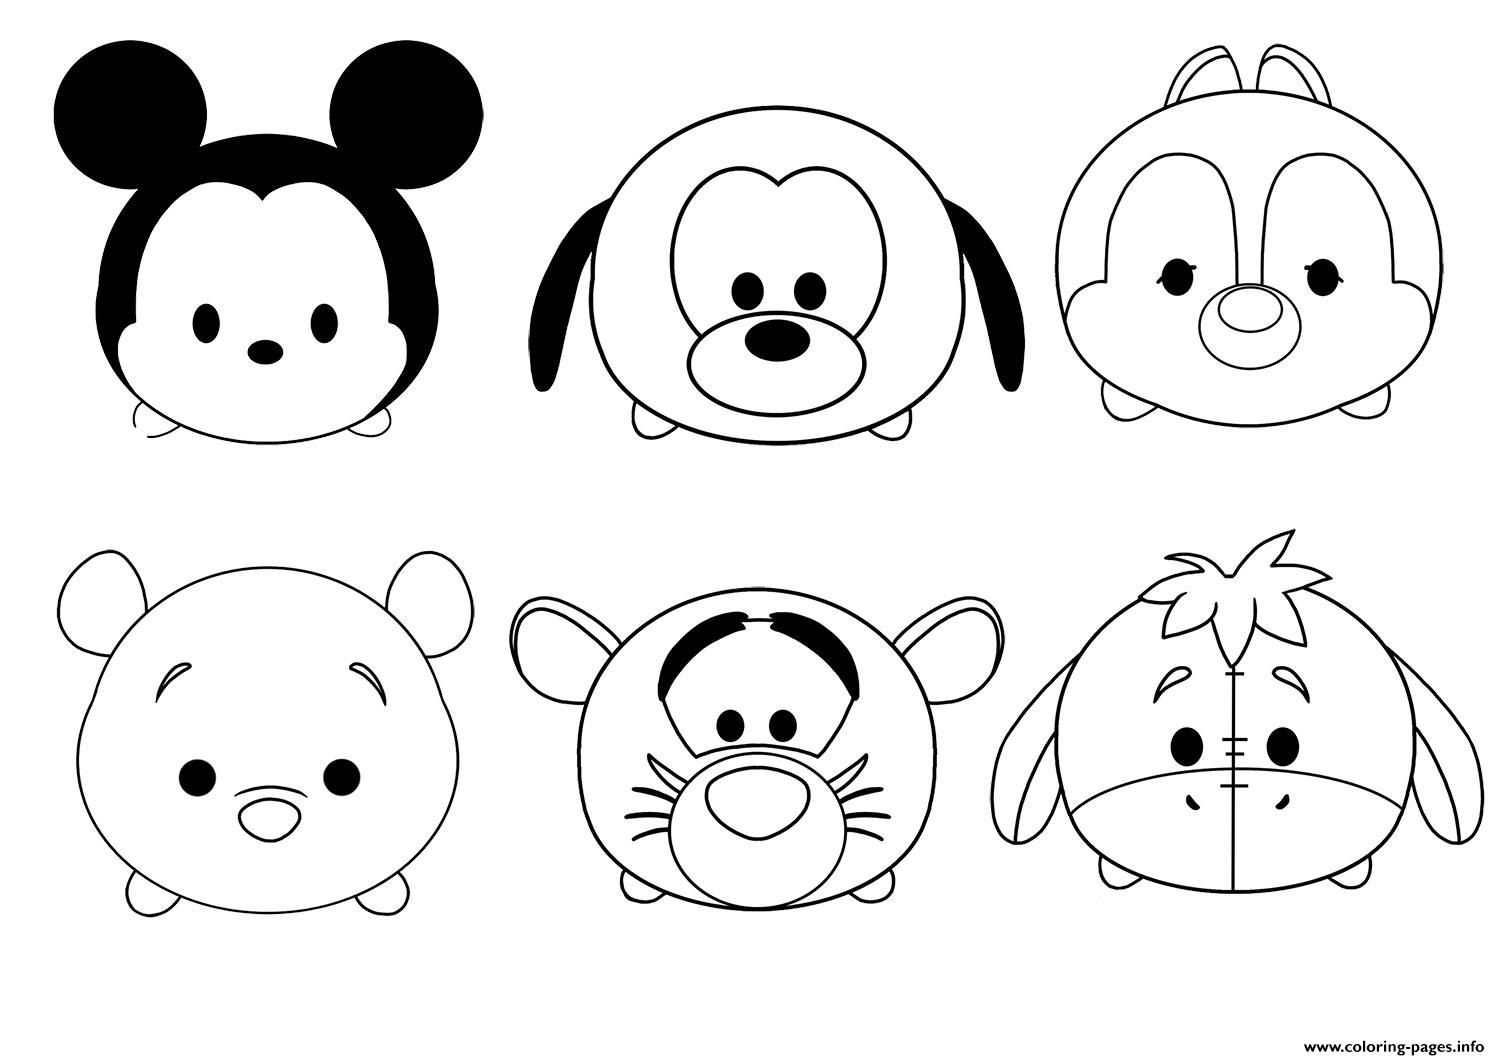 Colorear Tsum Tsum Cenicienta Tsum Tsum Dibujo Para: Print Tsum Tsum Disney Colouring Pages Coloring Pages